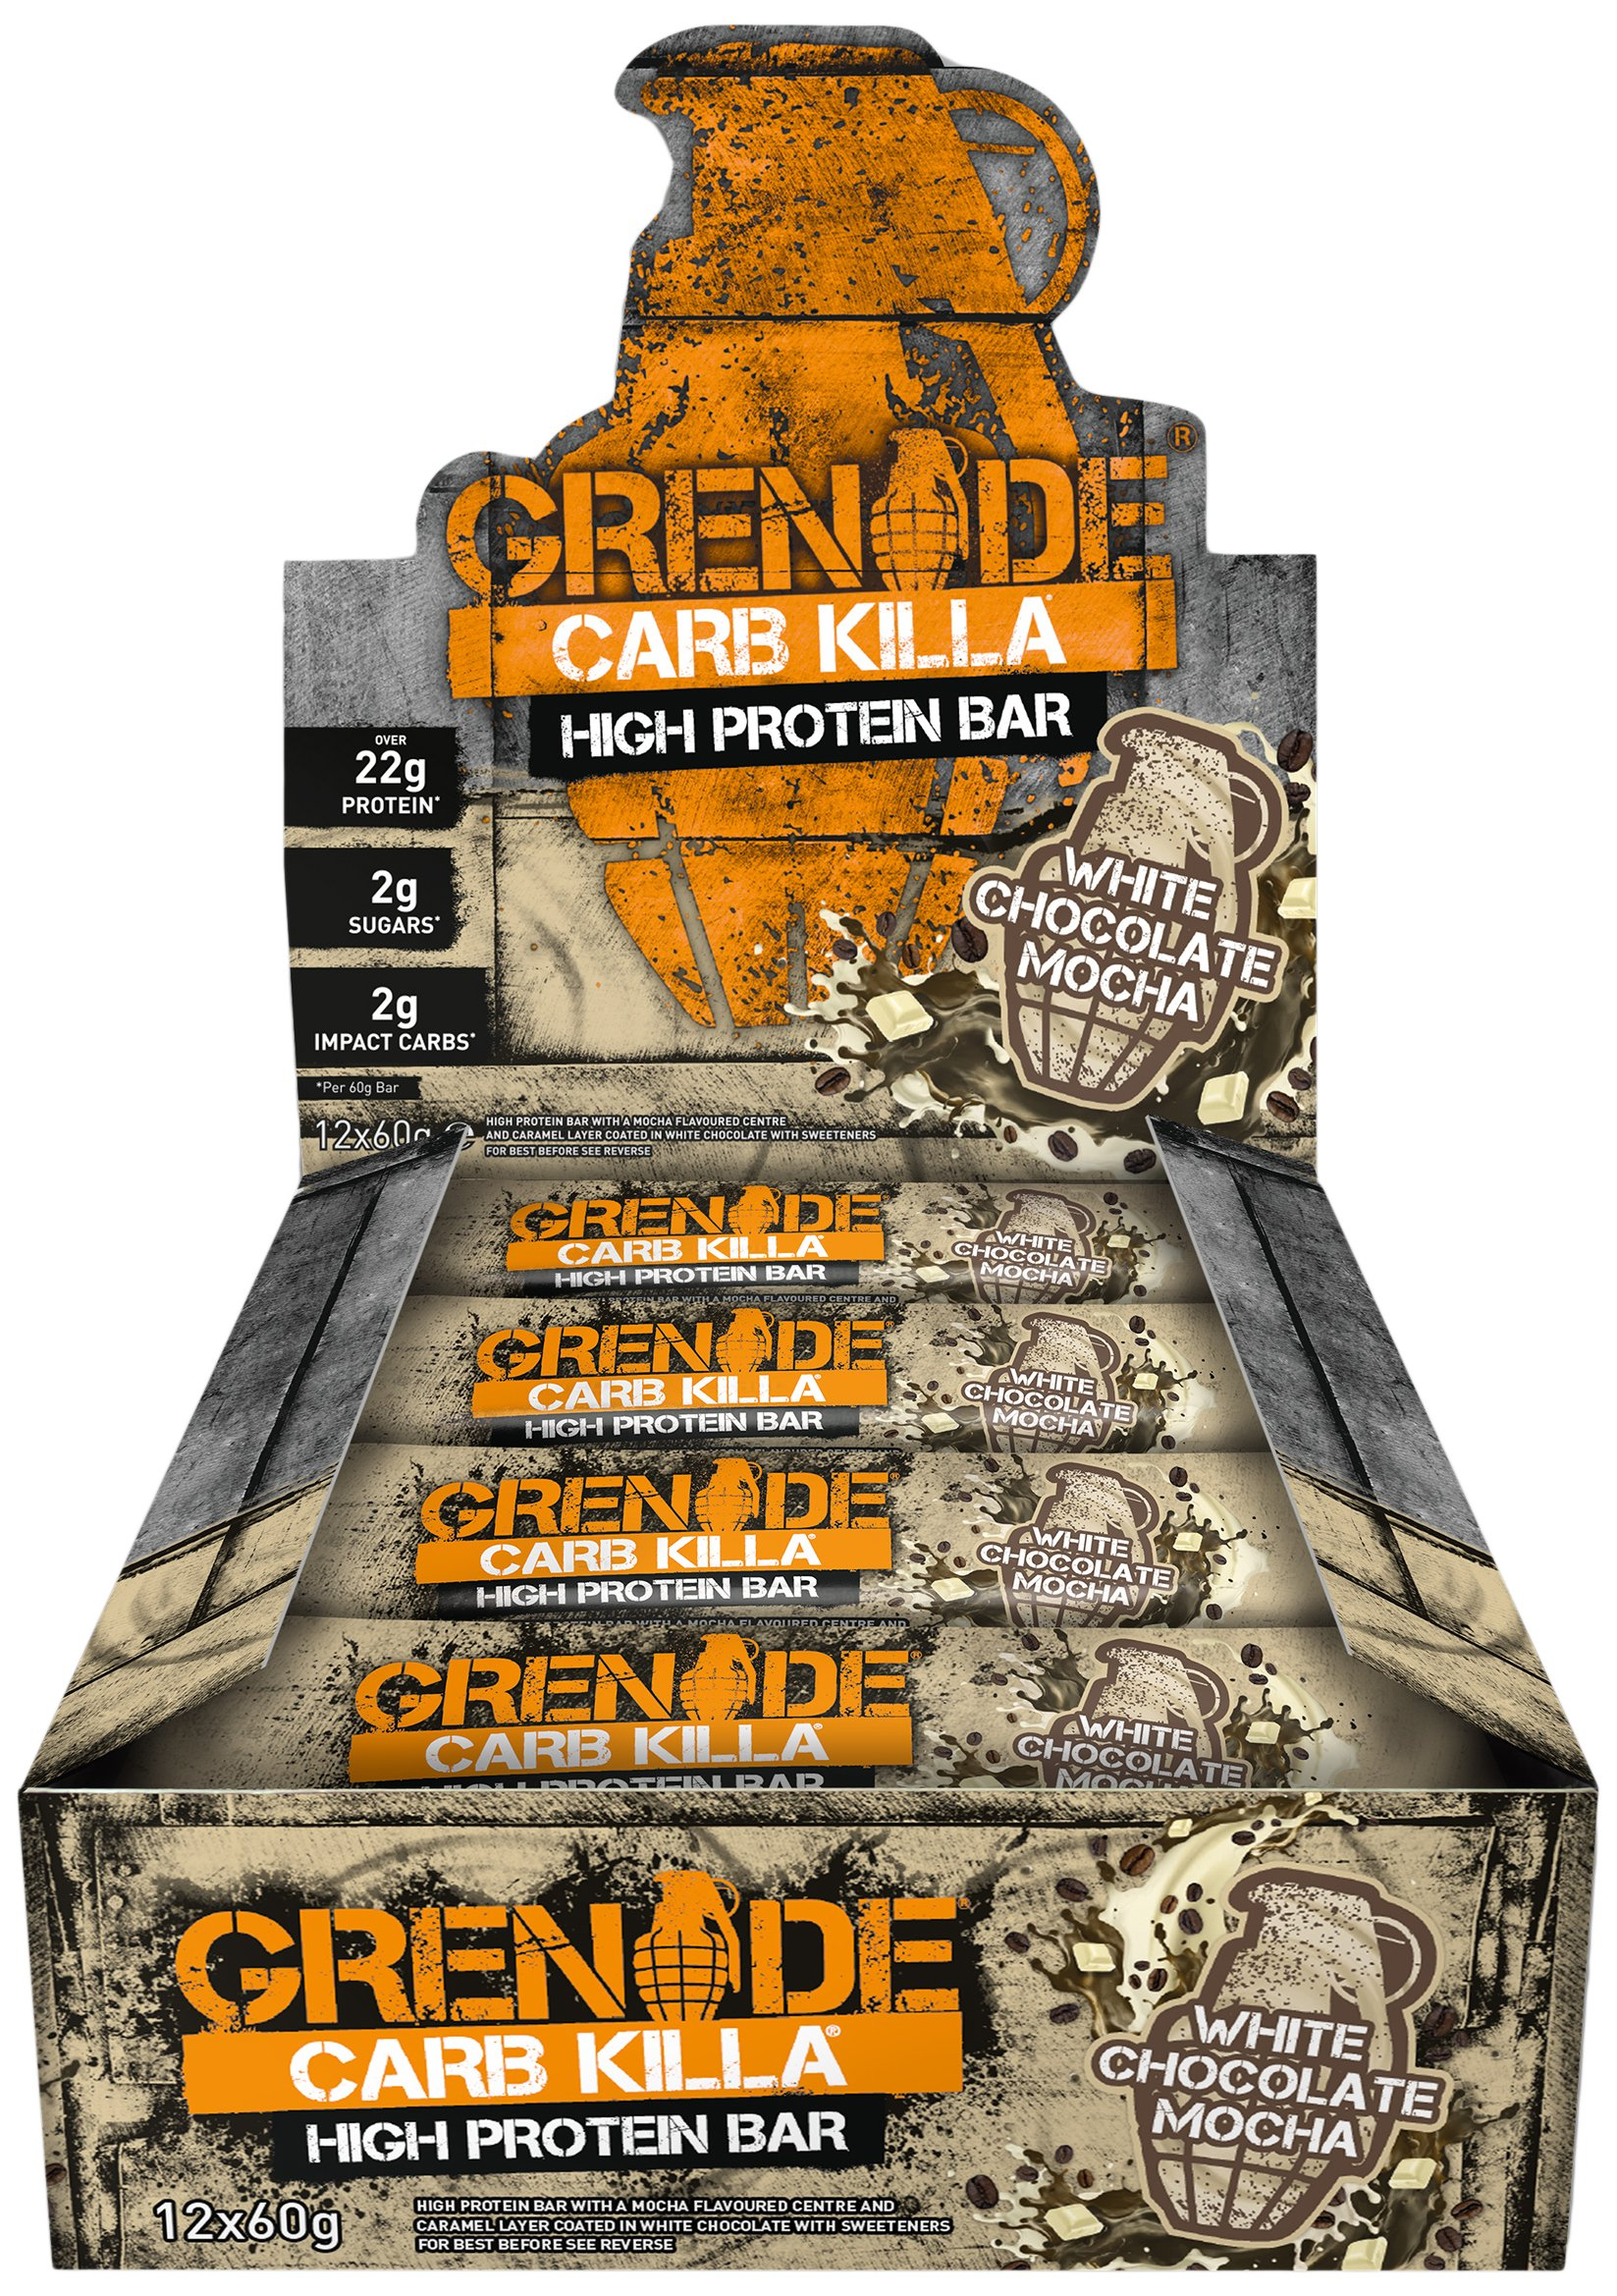 Grenade Carb Killa White Choc Mocha High Protein and Low Carb Bar, 12 x 60 g product image